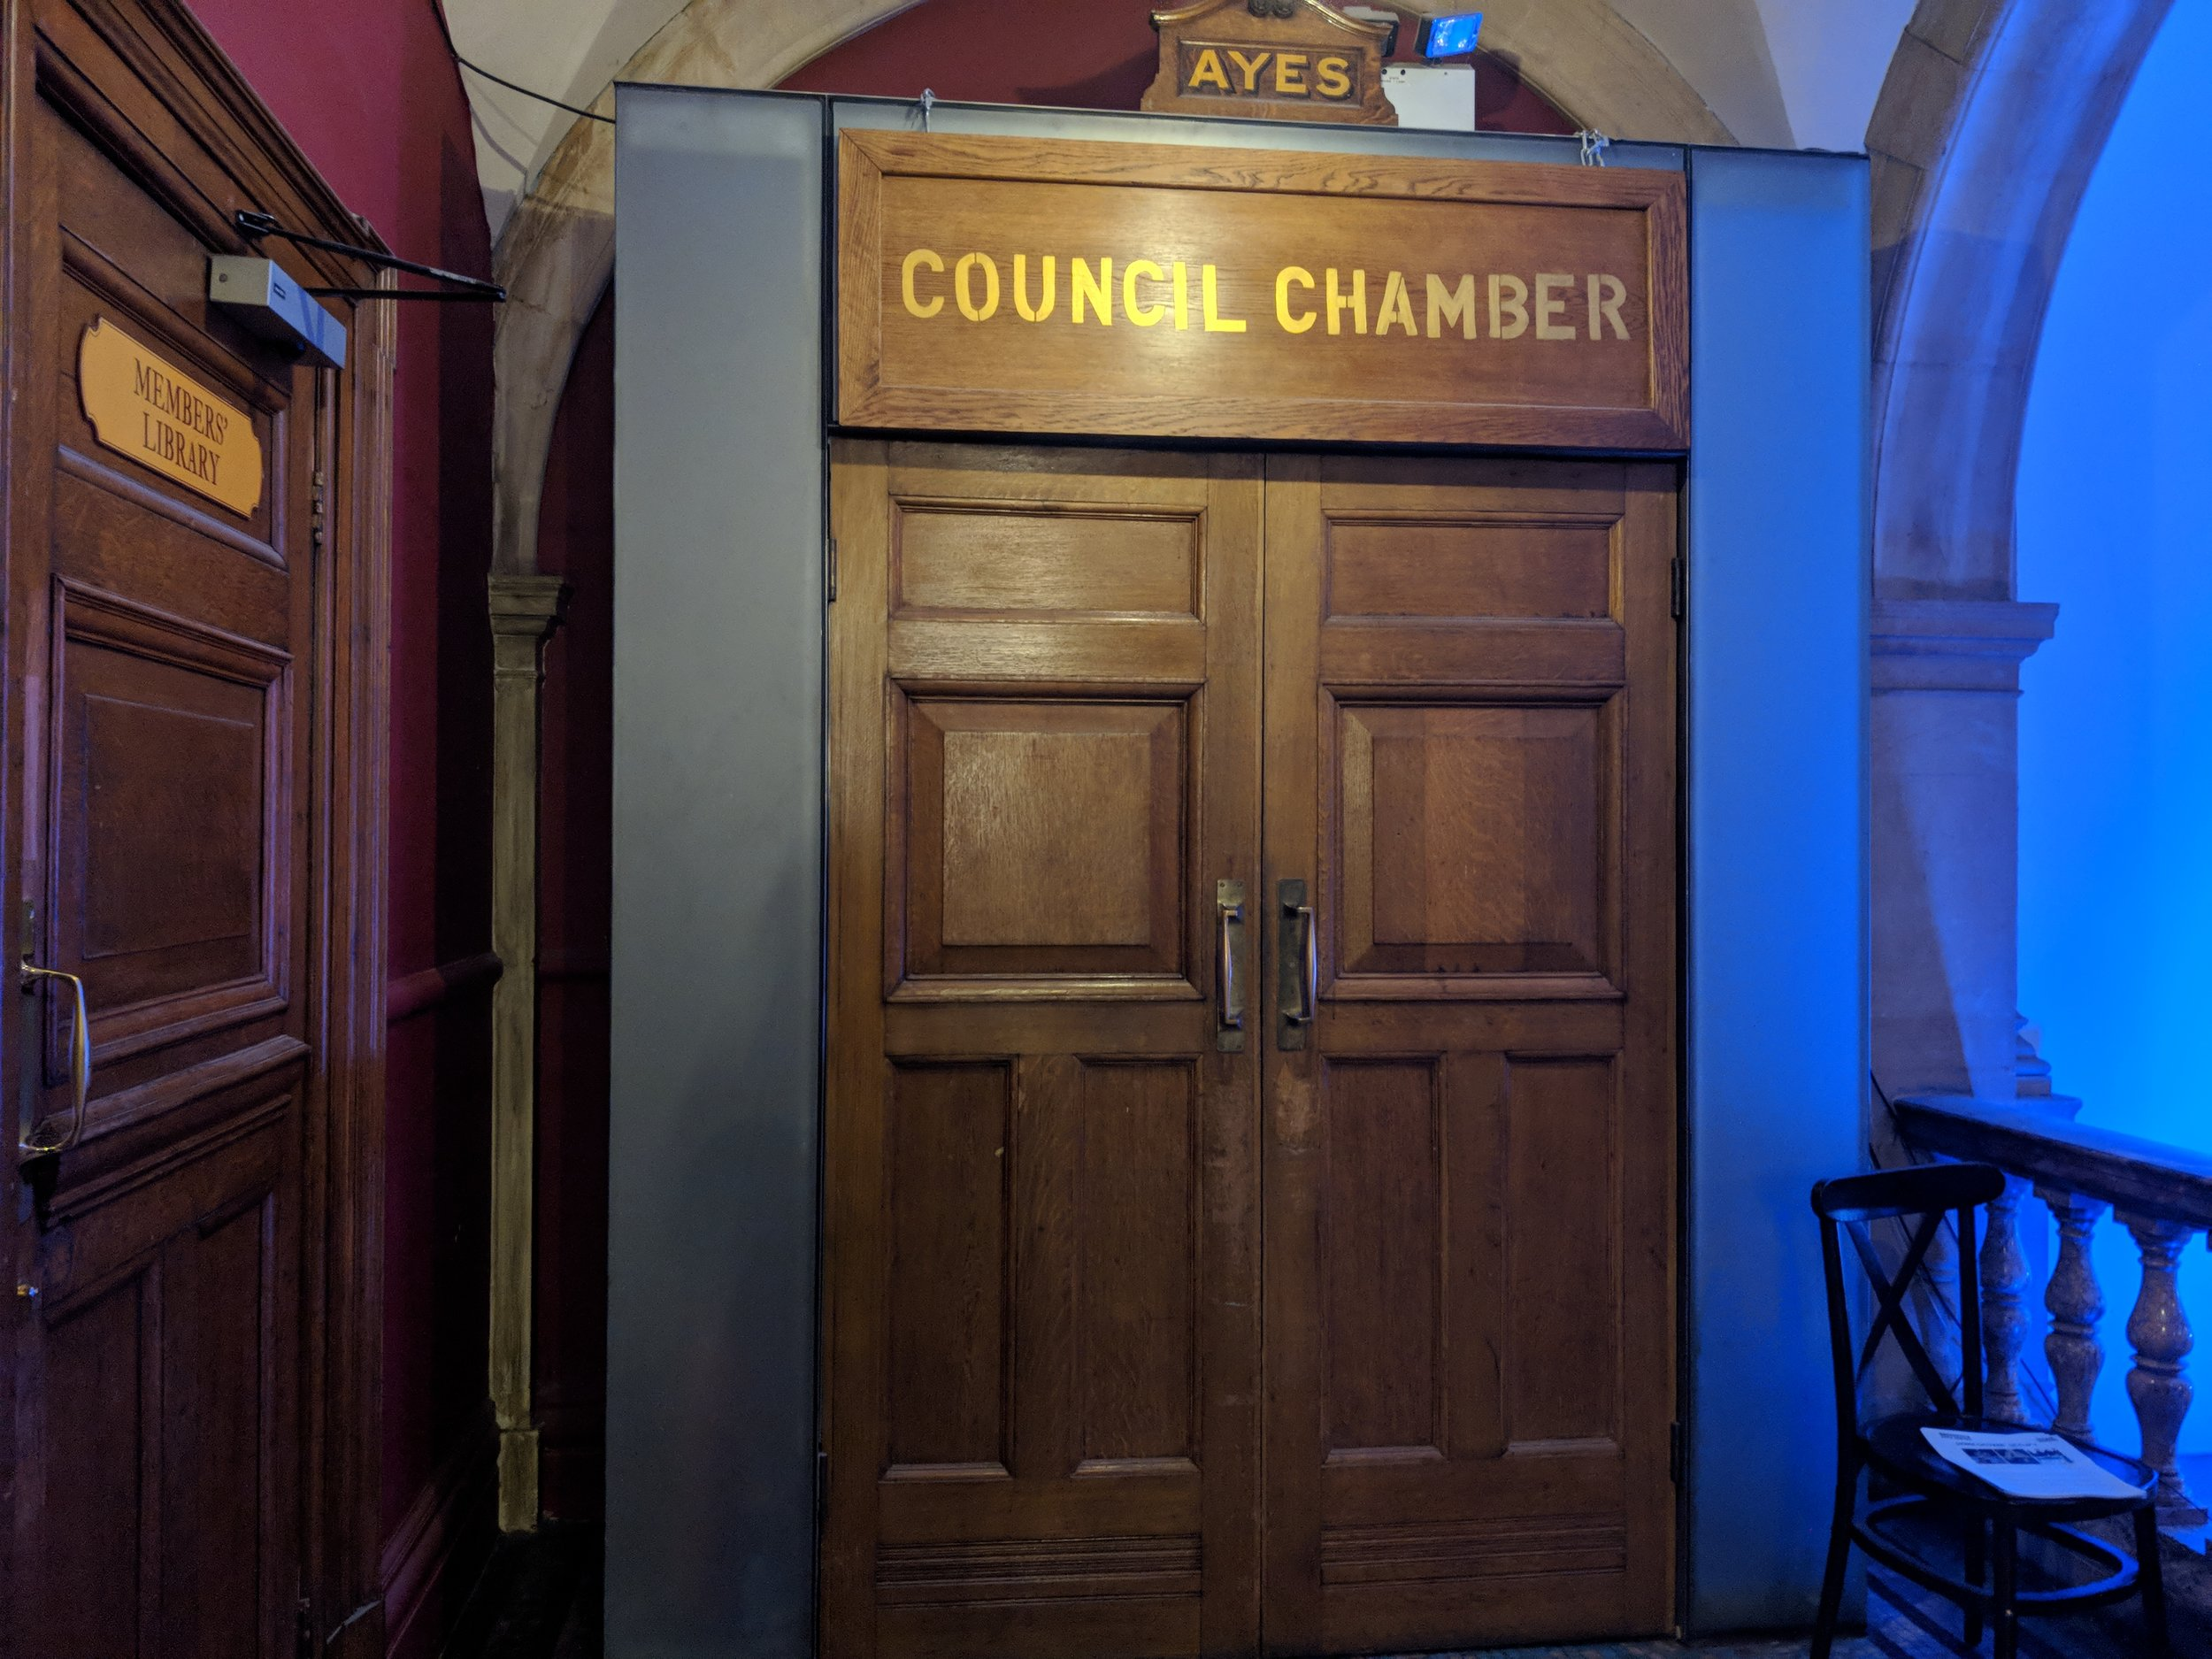 Battersea Arts Centre (Council Chamber) - visited 29/03/2019